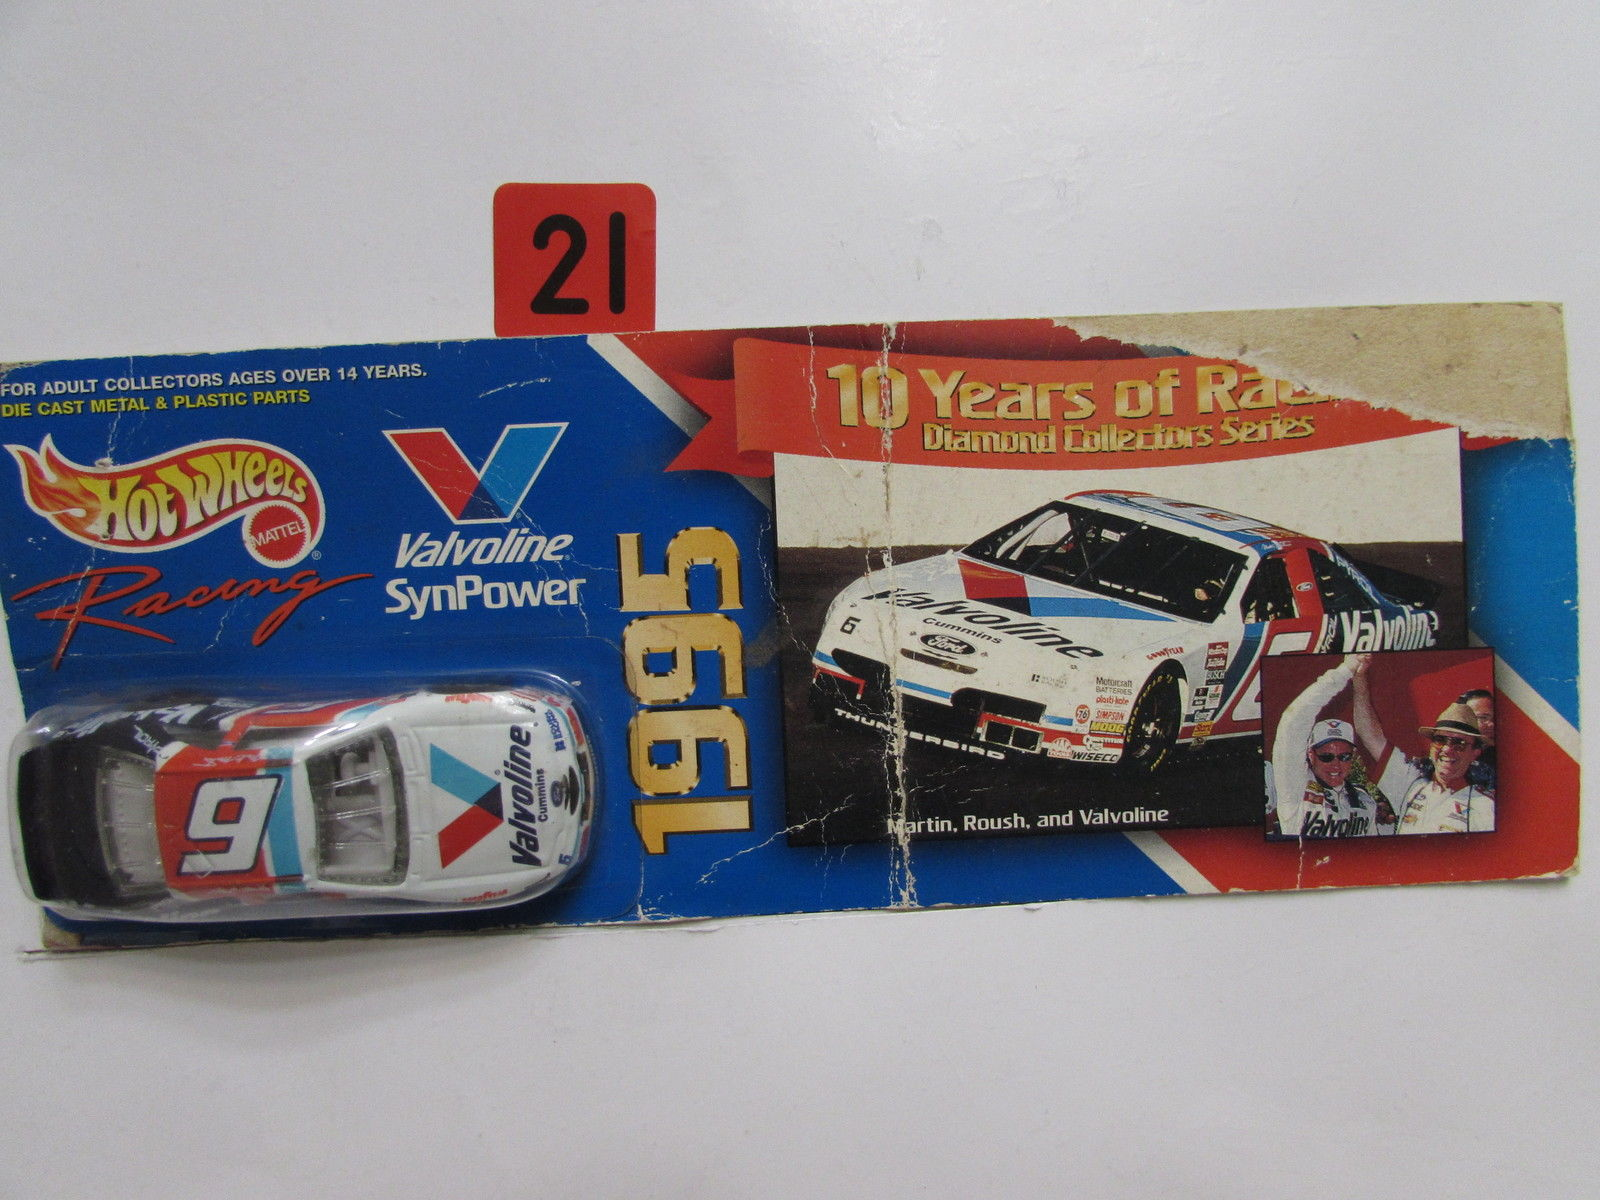 HOT WHEELS 1995 MARTIN, ROUSH, & VALVOLINE SYNPOWER